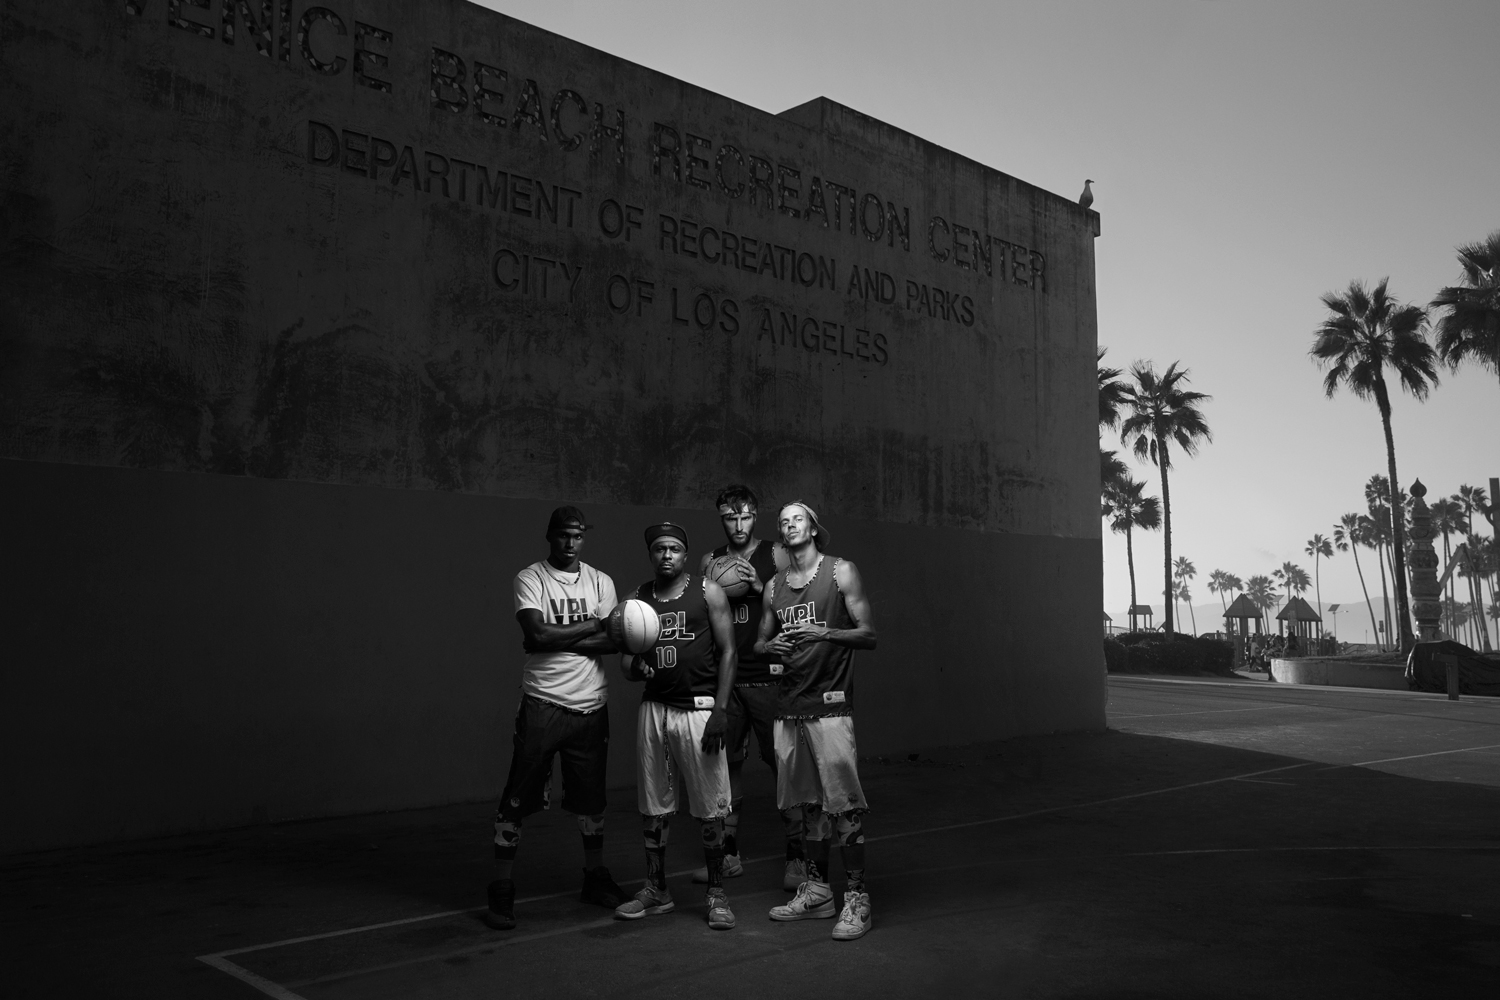 A group picture of young basketball players on a venice beach basketball court with palm trees in the background